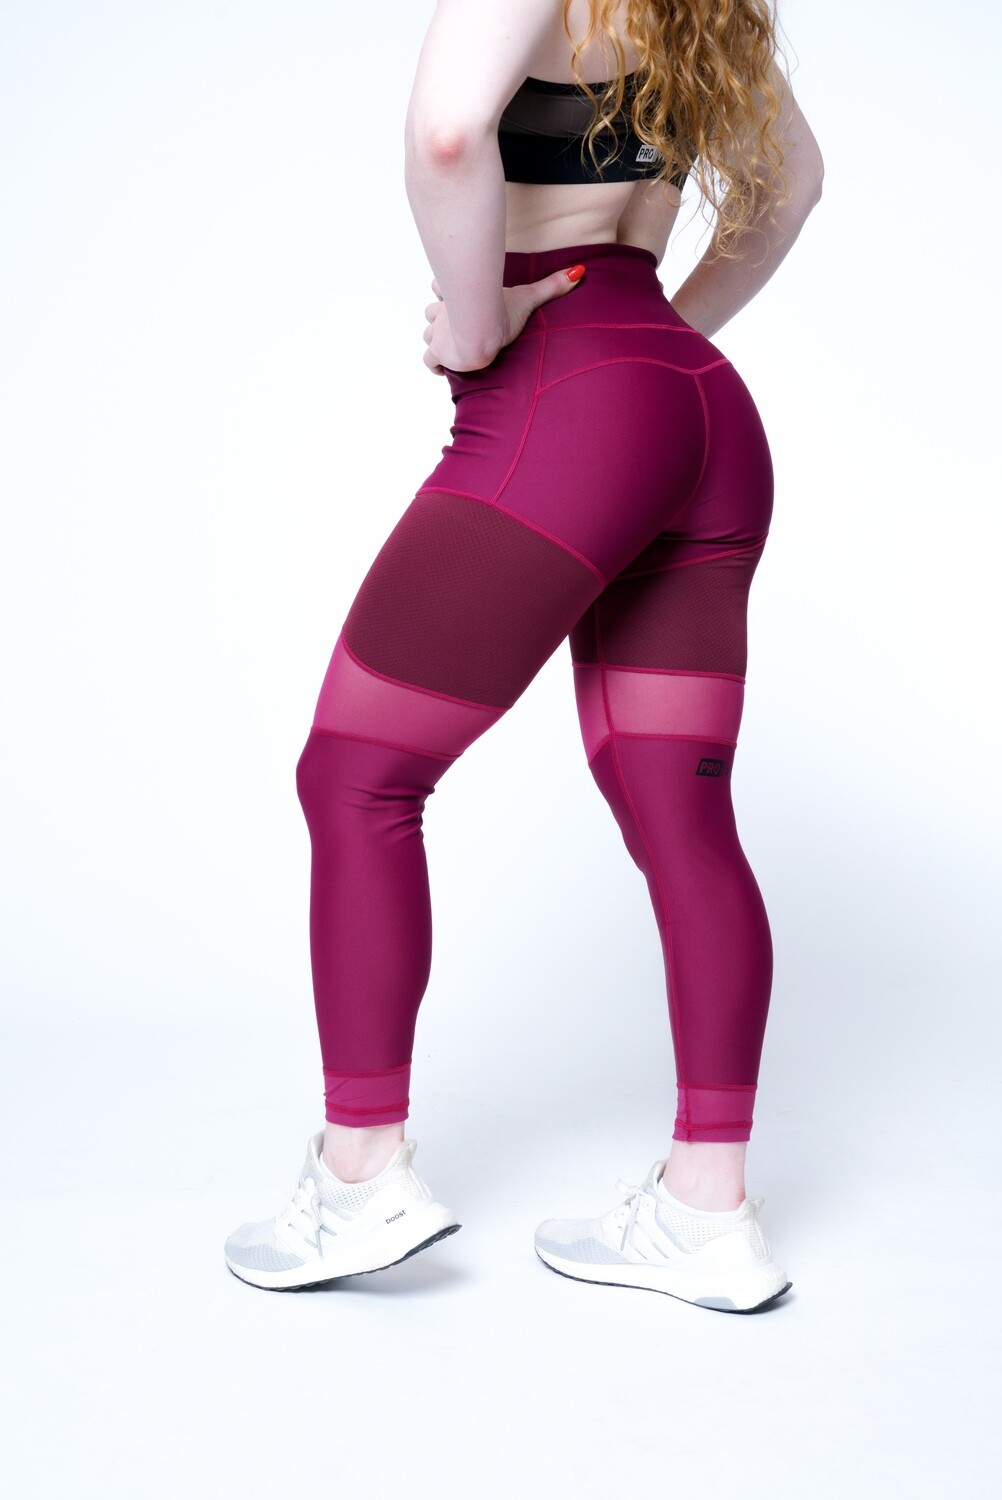 Women's leggings - Texture Mesh Fit